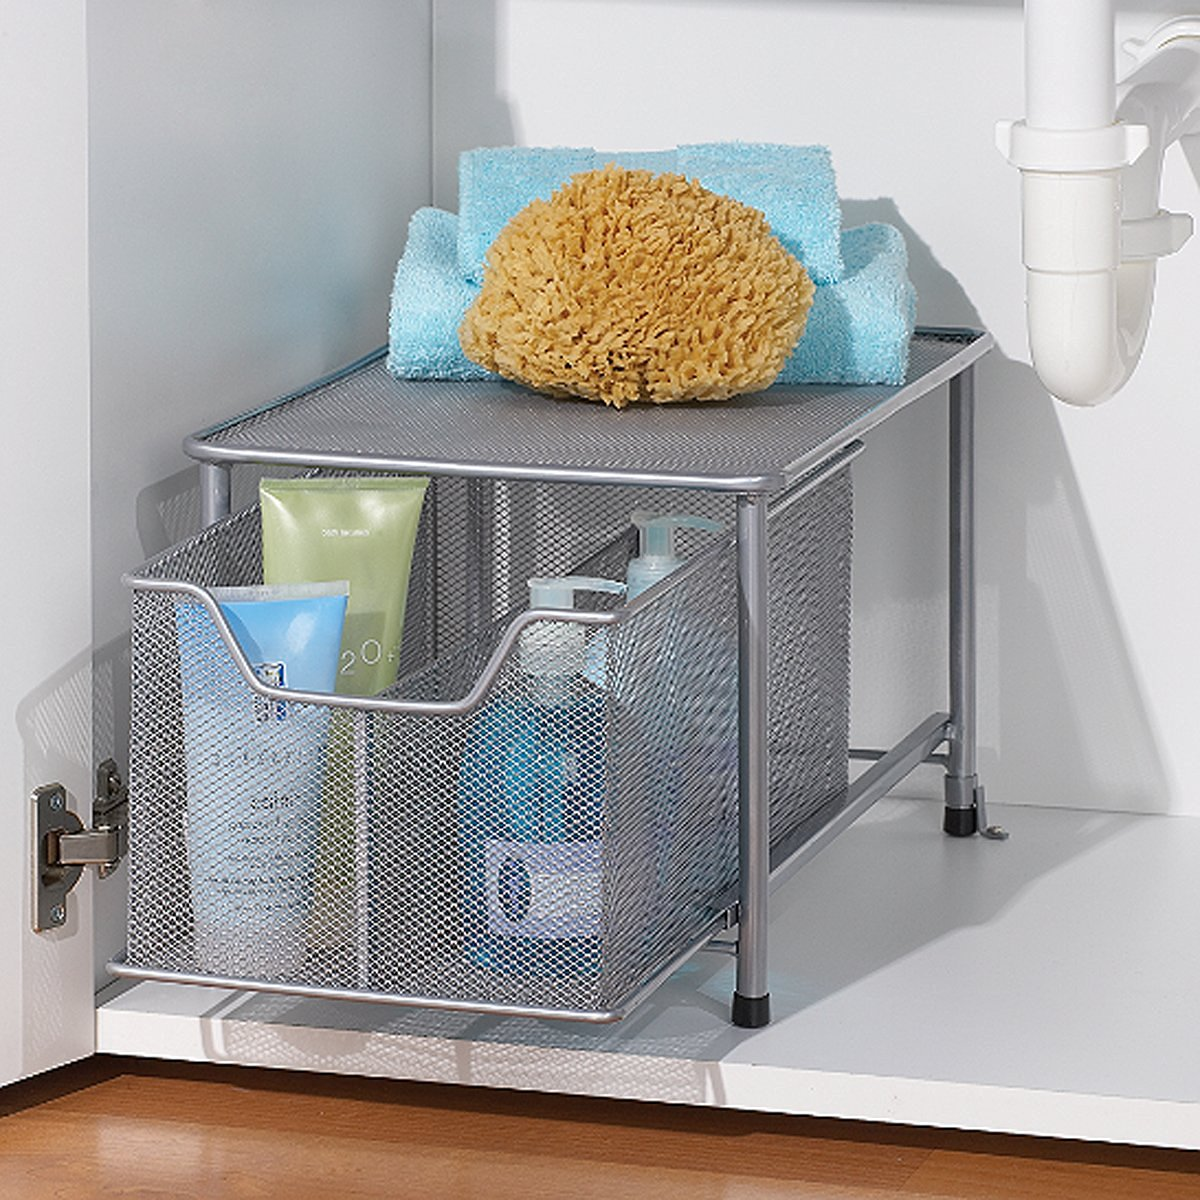 THE SIMPLE SOLUTIONS® LARGE CABINET DRAWER via simphome 1